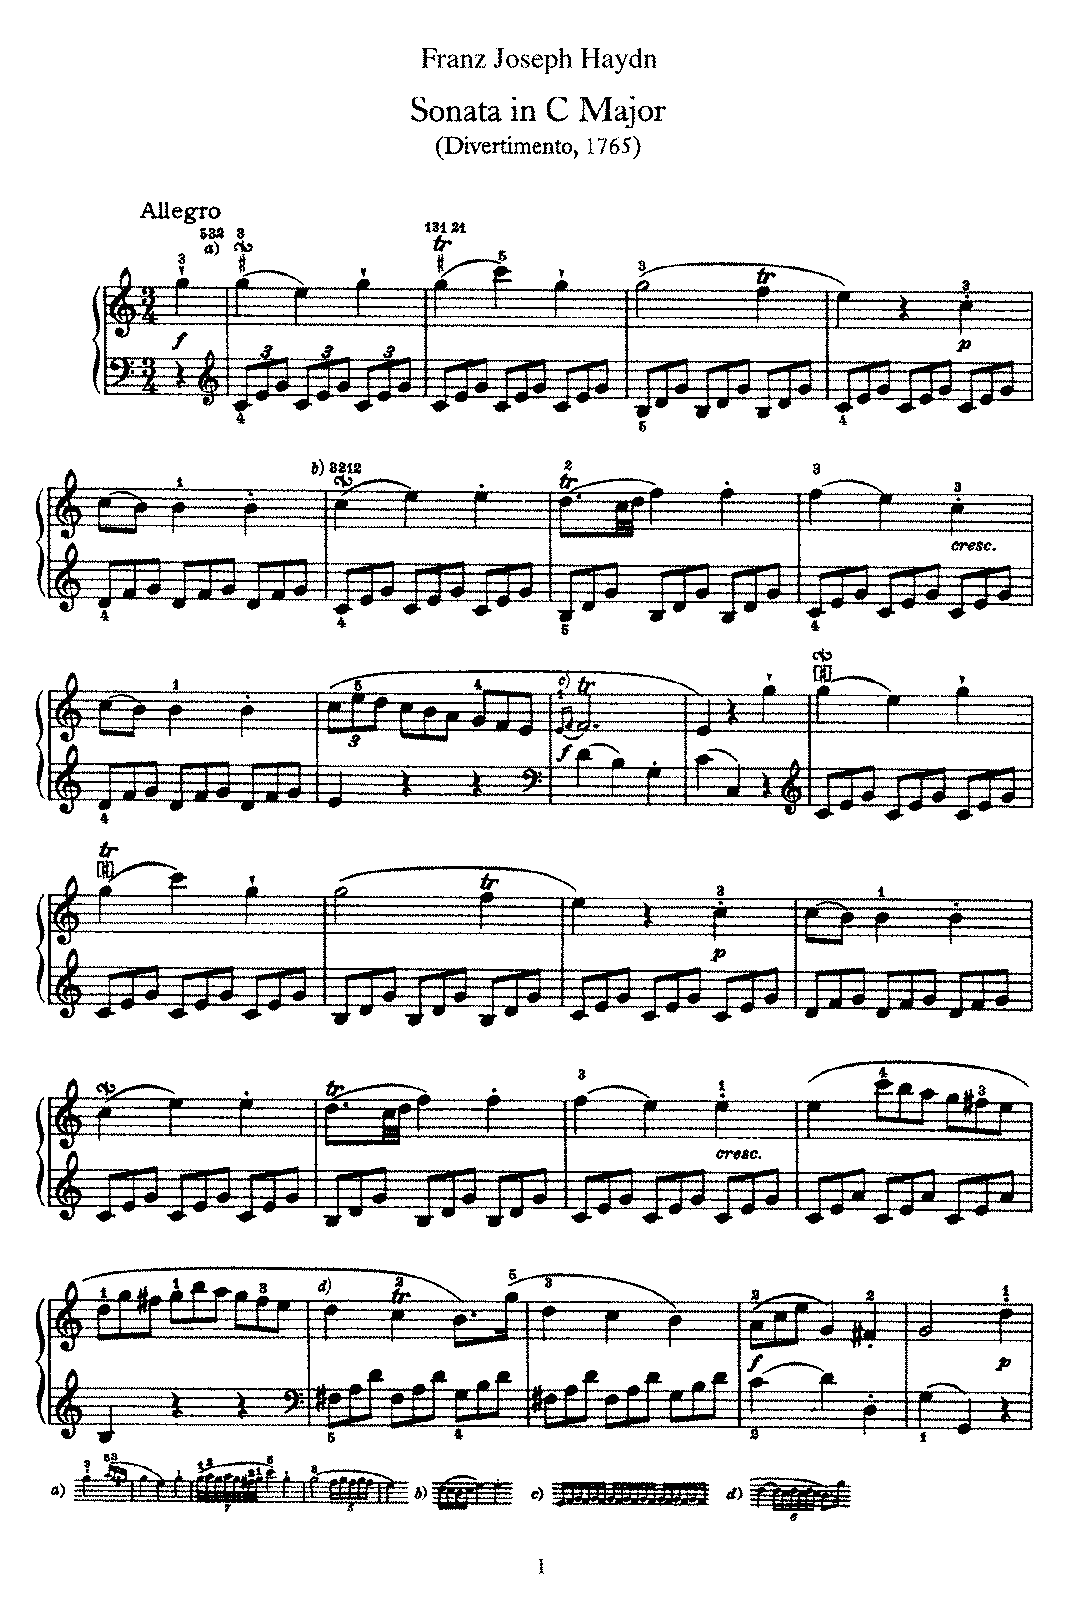 Piano Sonata No 3 in C.pdf